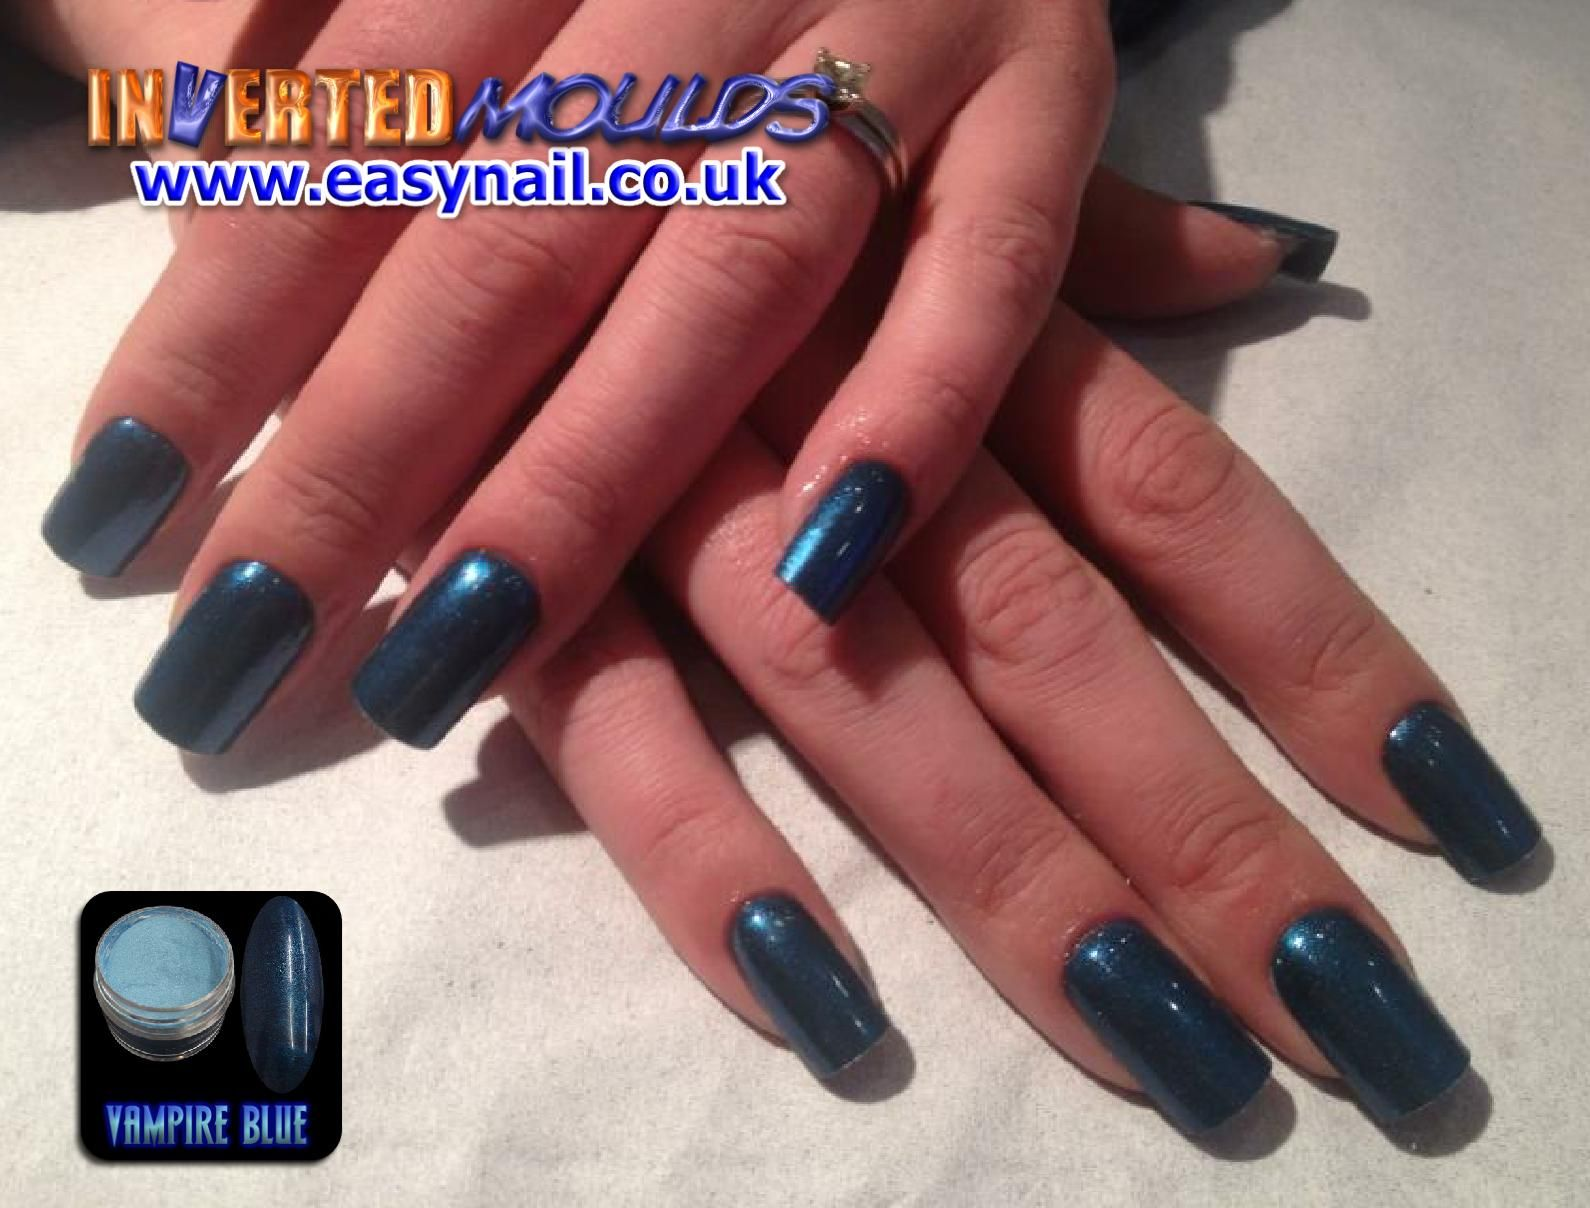 Our VAMPIRE BLUE nail art powder was an experiment colour, but as ...